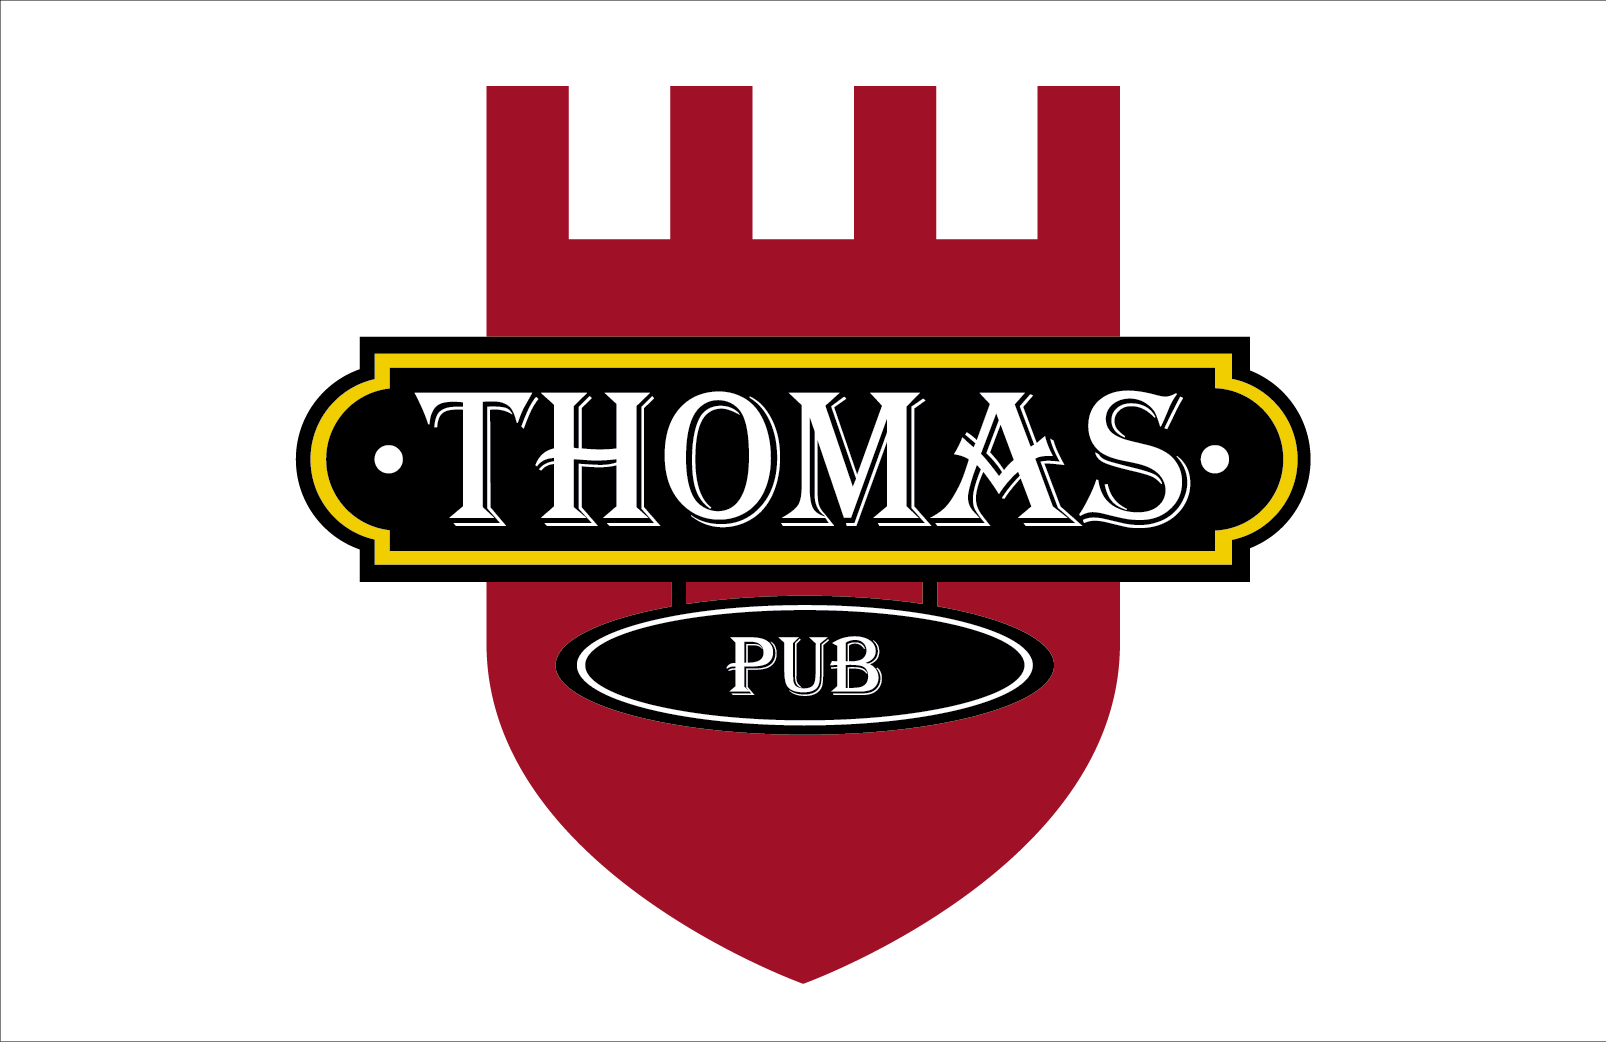 thomas pub. Black Bedroom Furniture Sets. Home Design Ideas